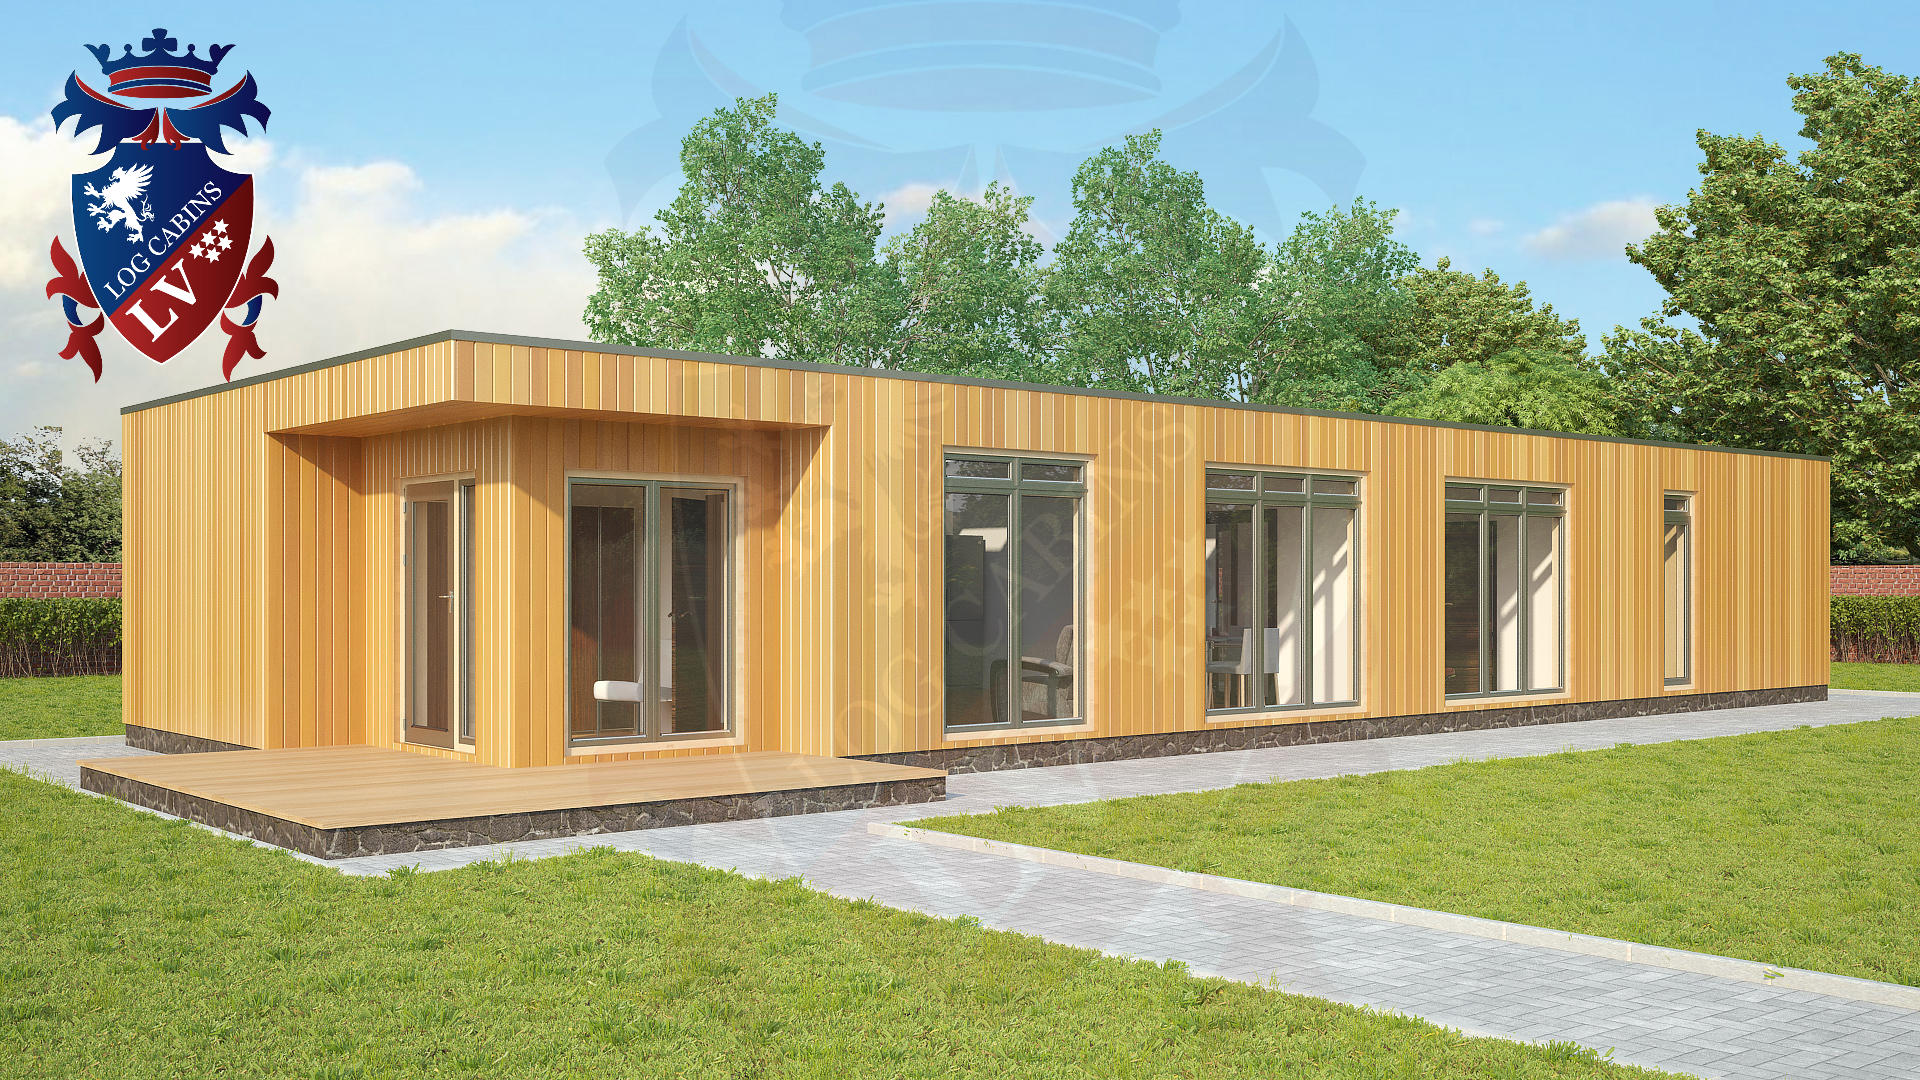 Bespoke Log Cabins - Buildings  LV  12